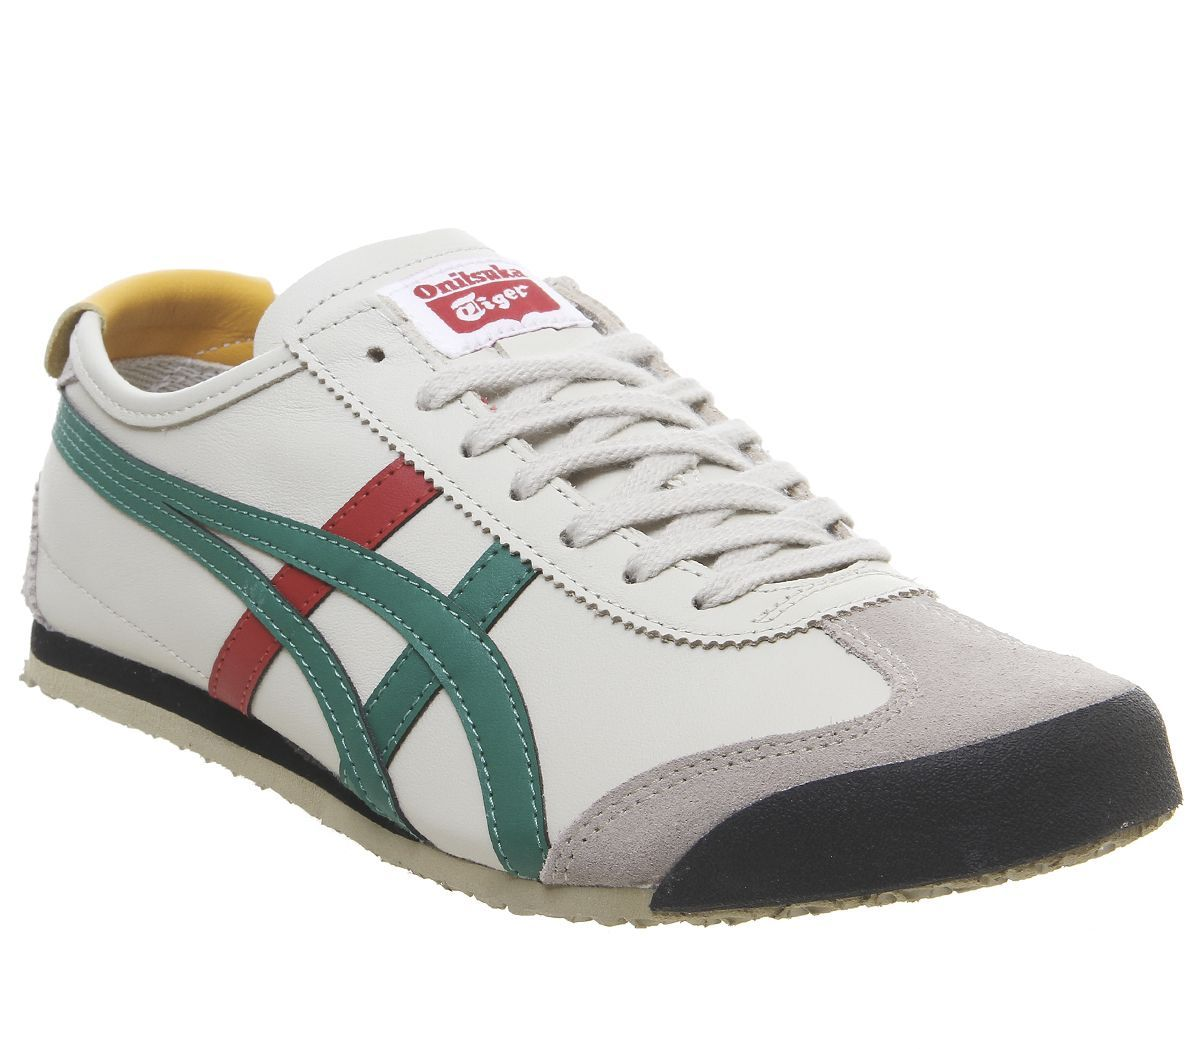 onitsuka tiger mexico 66 beige green red ii